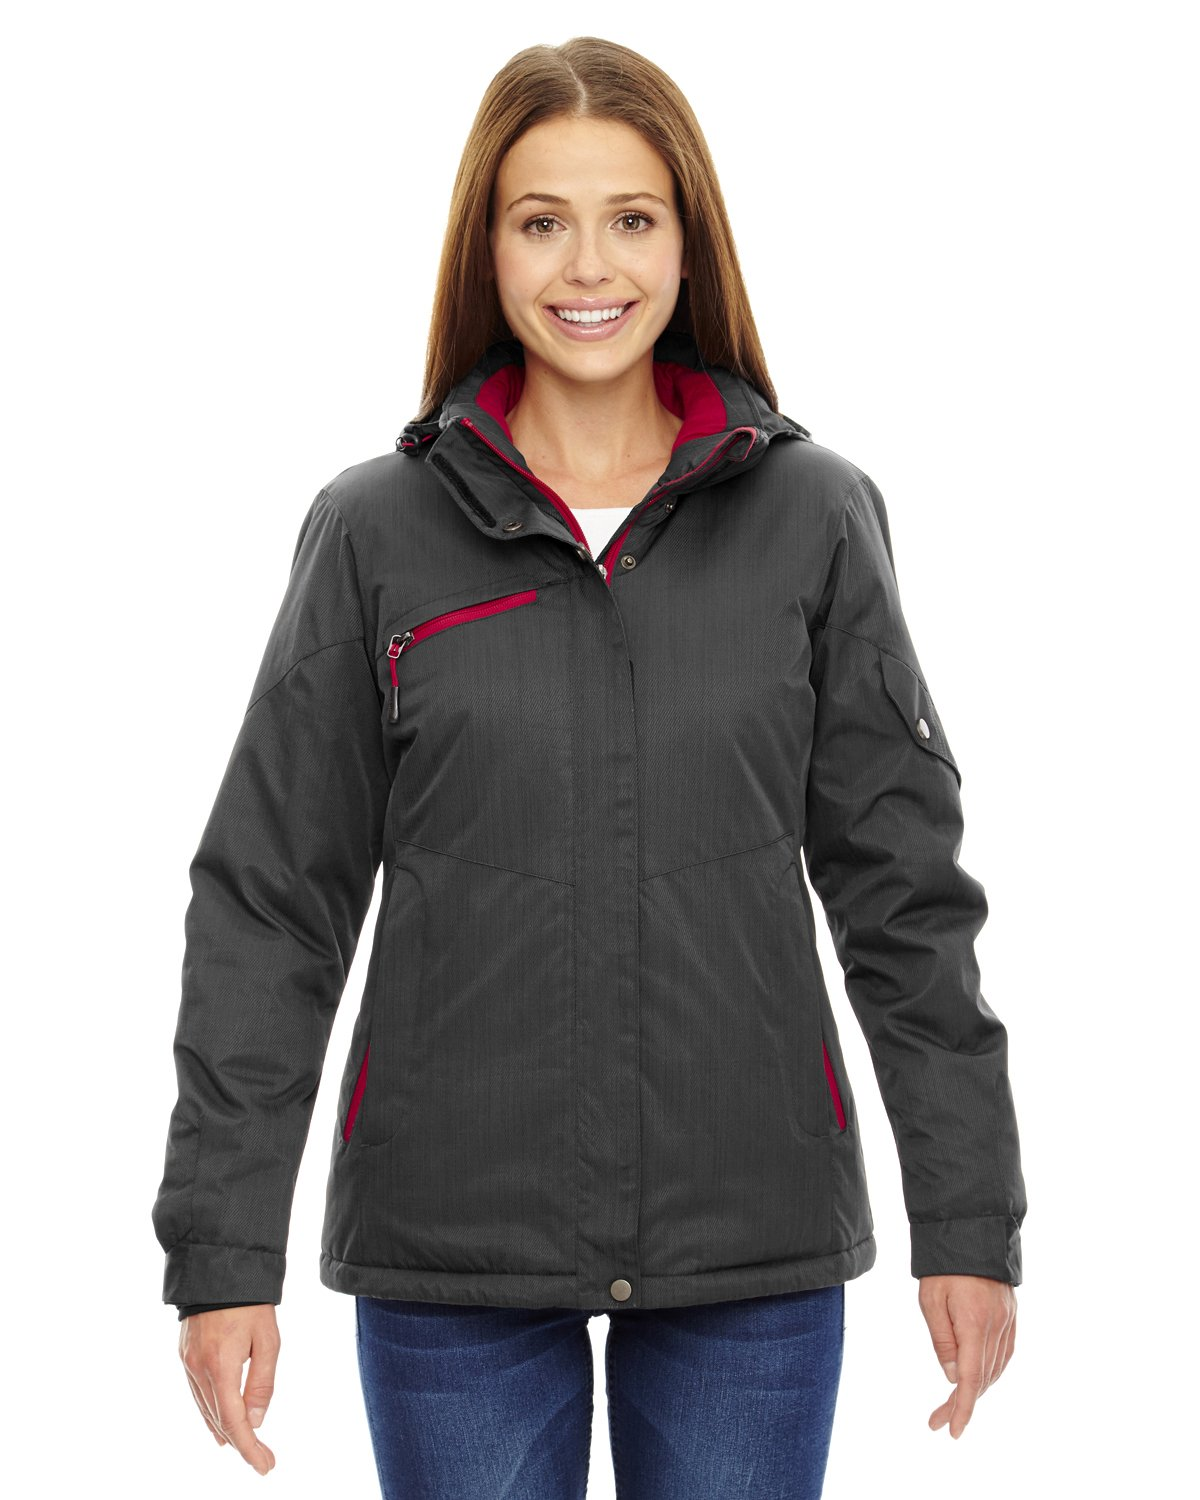 Ash City Apparel North End Rivet Ladies Insulated Jacket (Medium, Carbon/Classic Red)